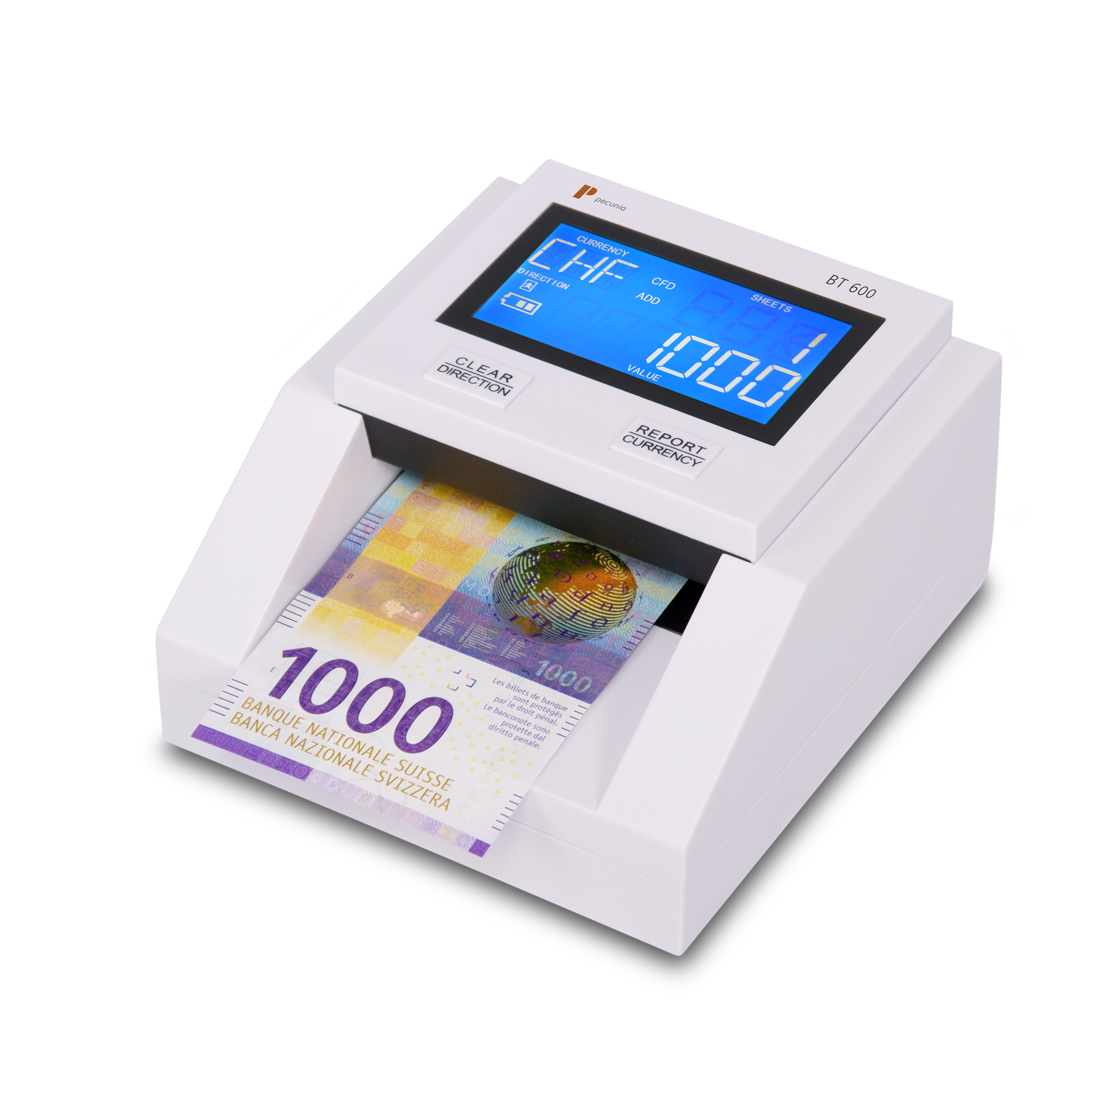 Counterfeit detector Pecunia BT 600 mobile